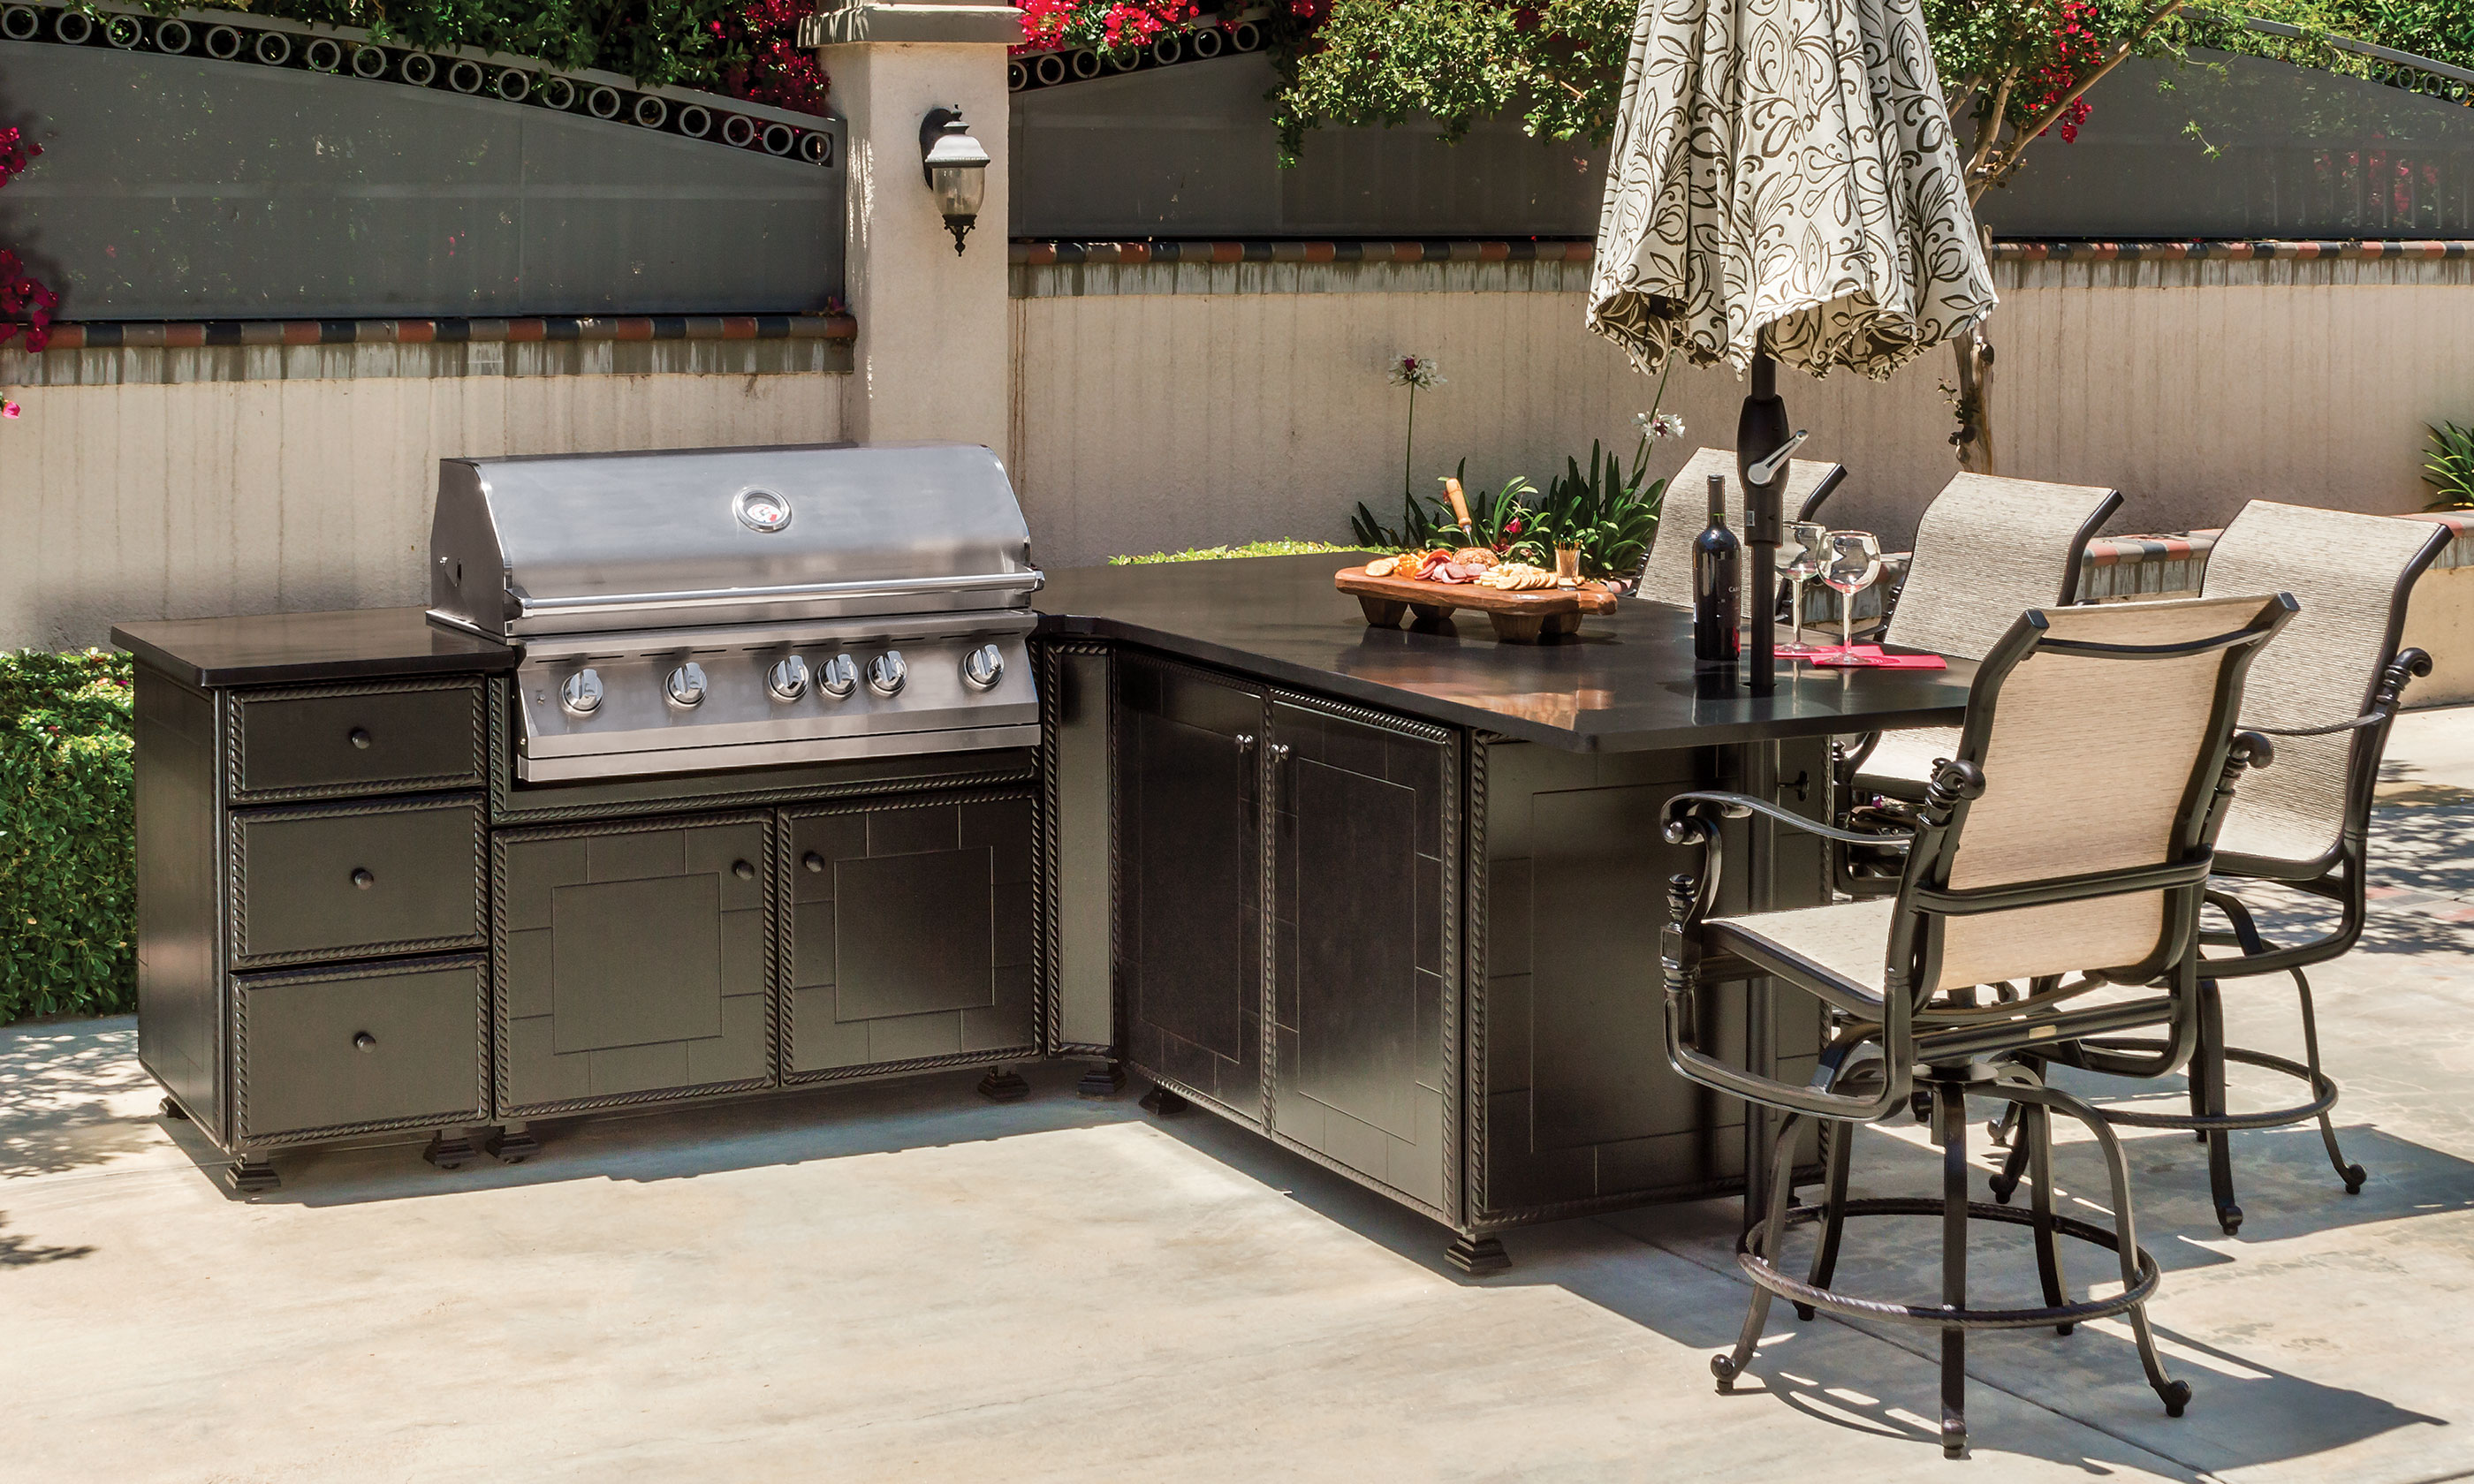 Kitchen Island Grill outdoor kitchens > kitchen islands > grill & seating l-shape